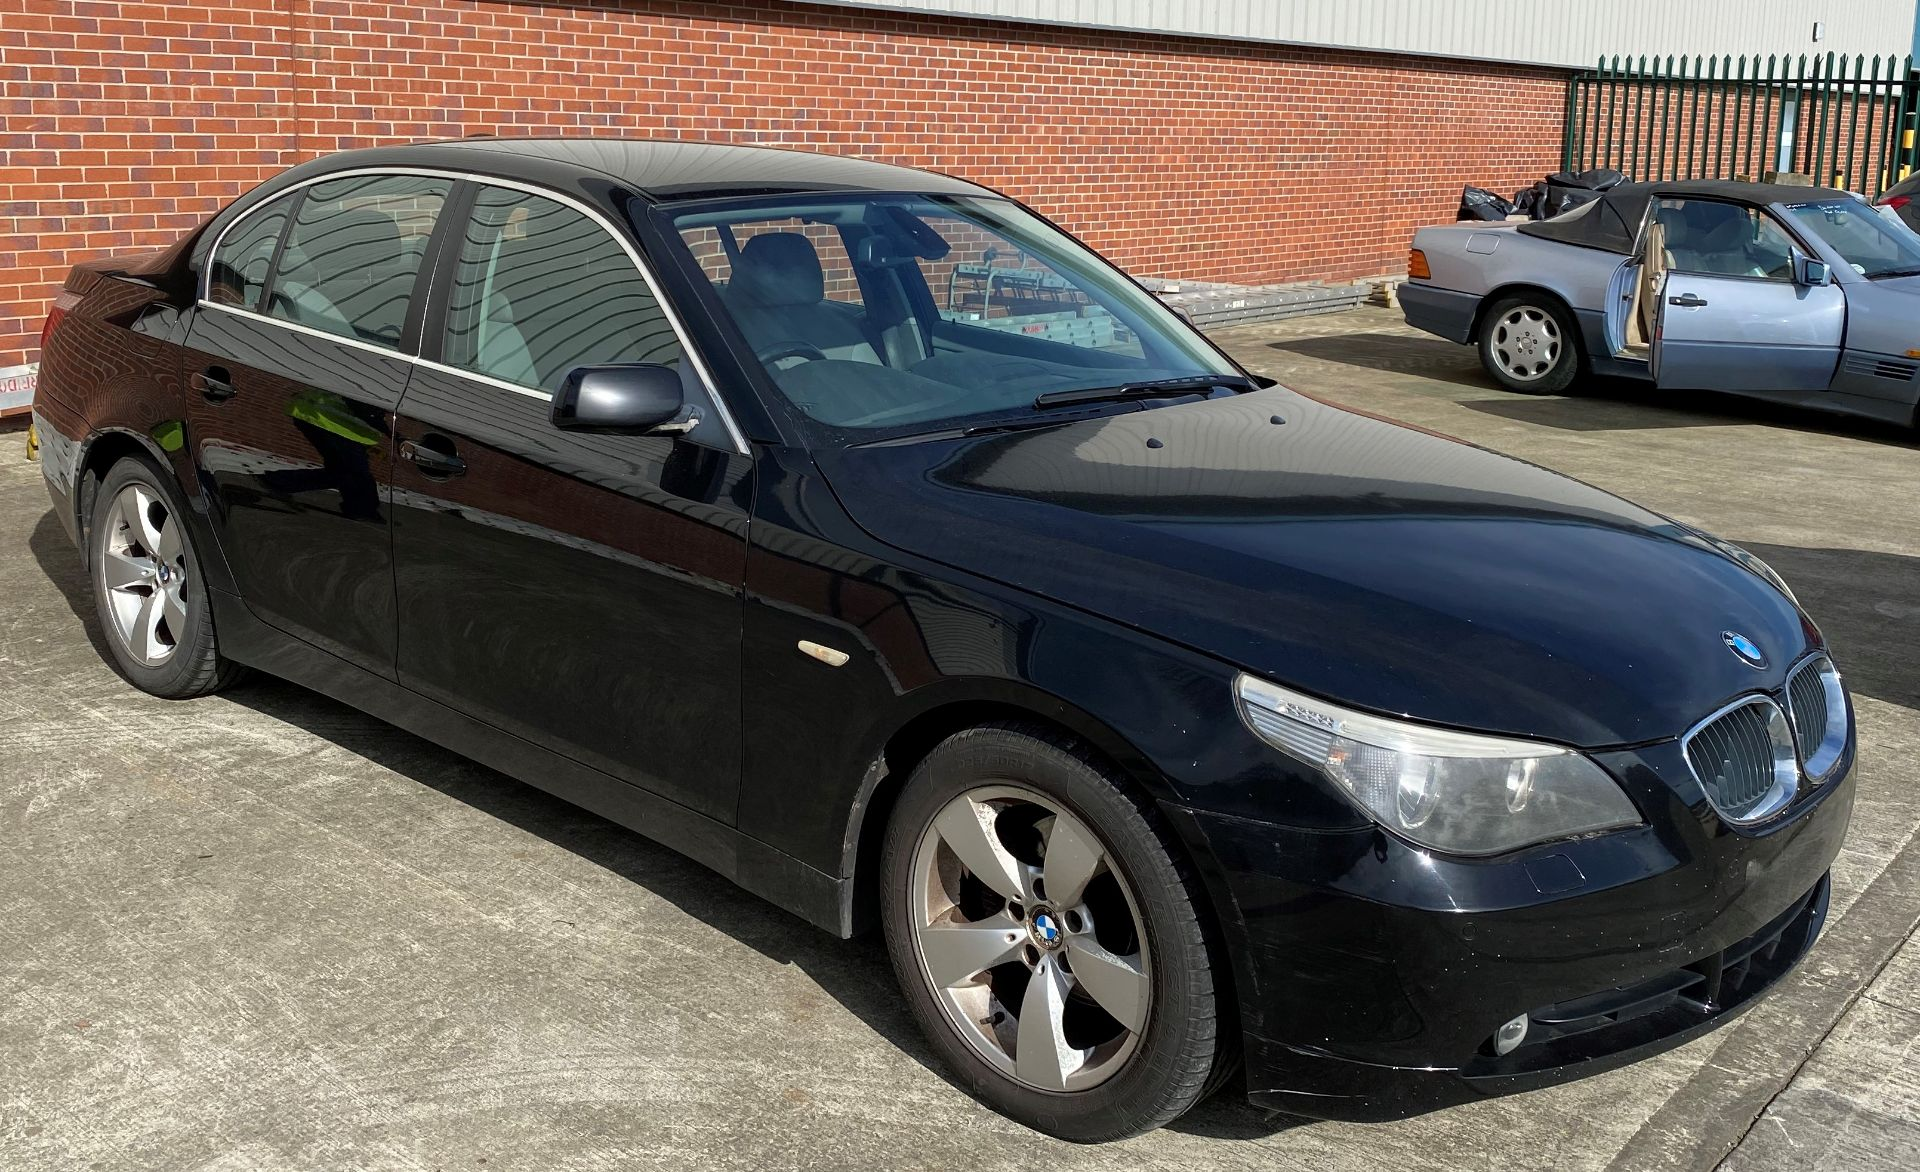 Lot 5 - BMW 520D 4 DOOR SALOON - Diesel - Black - Grey leather upholstery Reg No: LM56 PNU Rec Mileage: 251,